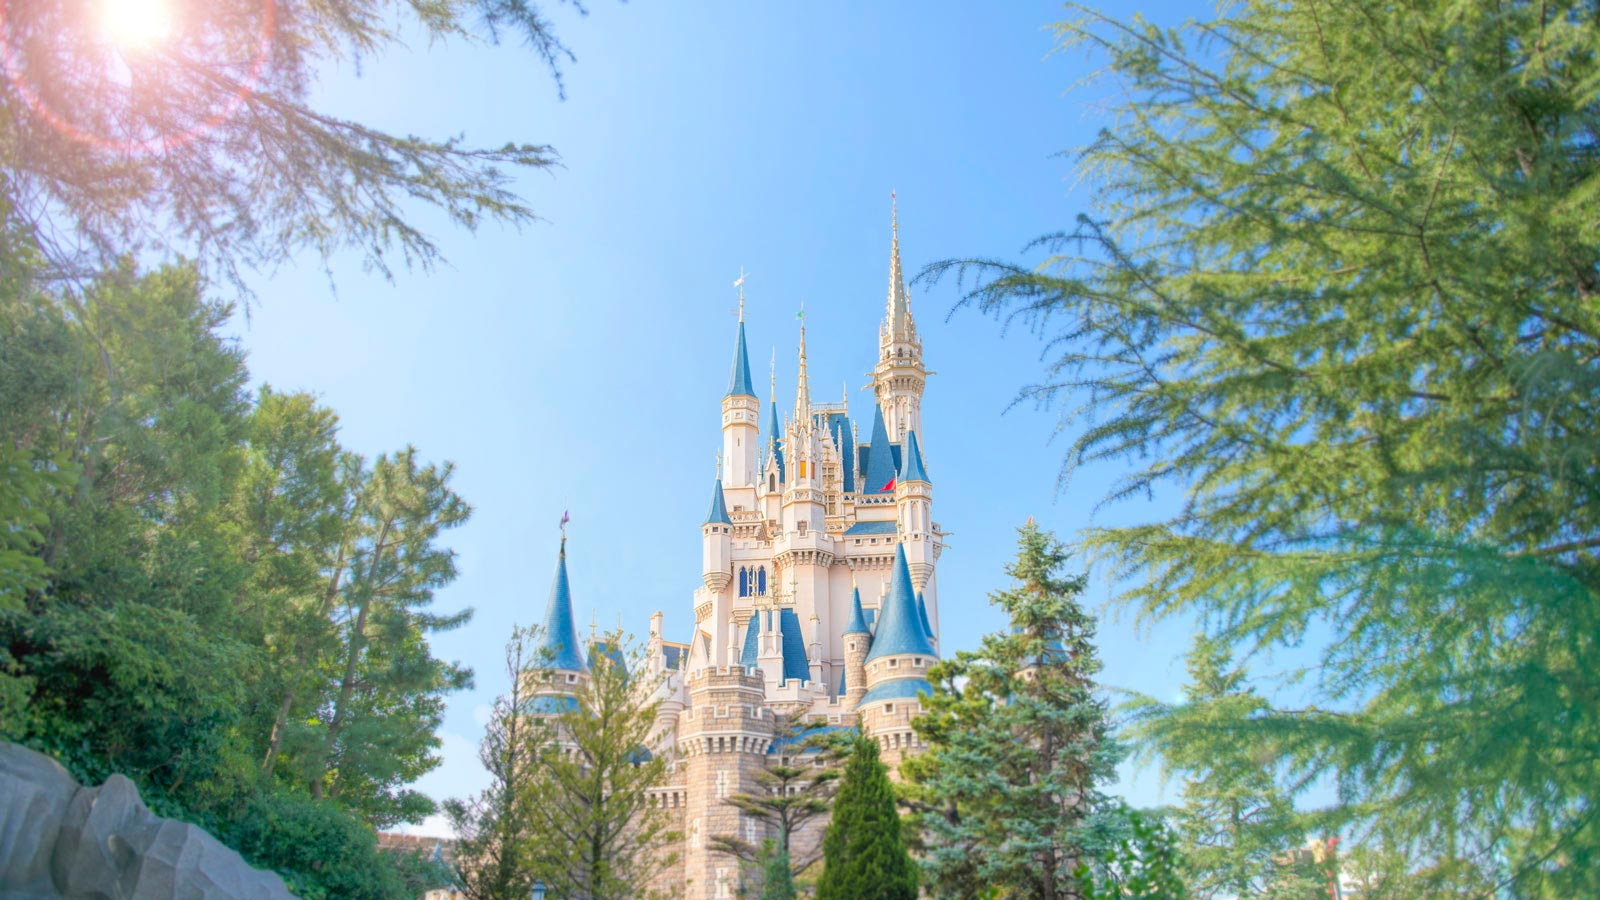 https://media2.tokyodisneyresort.jp/home/tdl/top/mainL_20190401_01.jpg